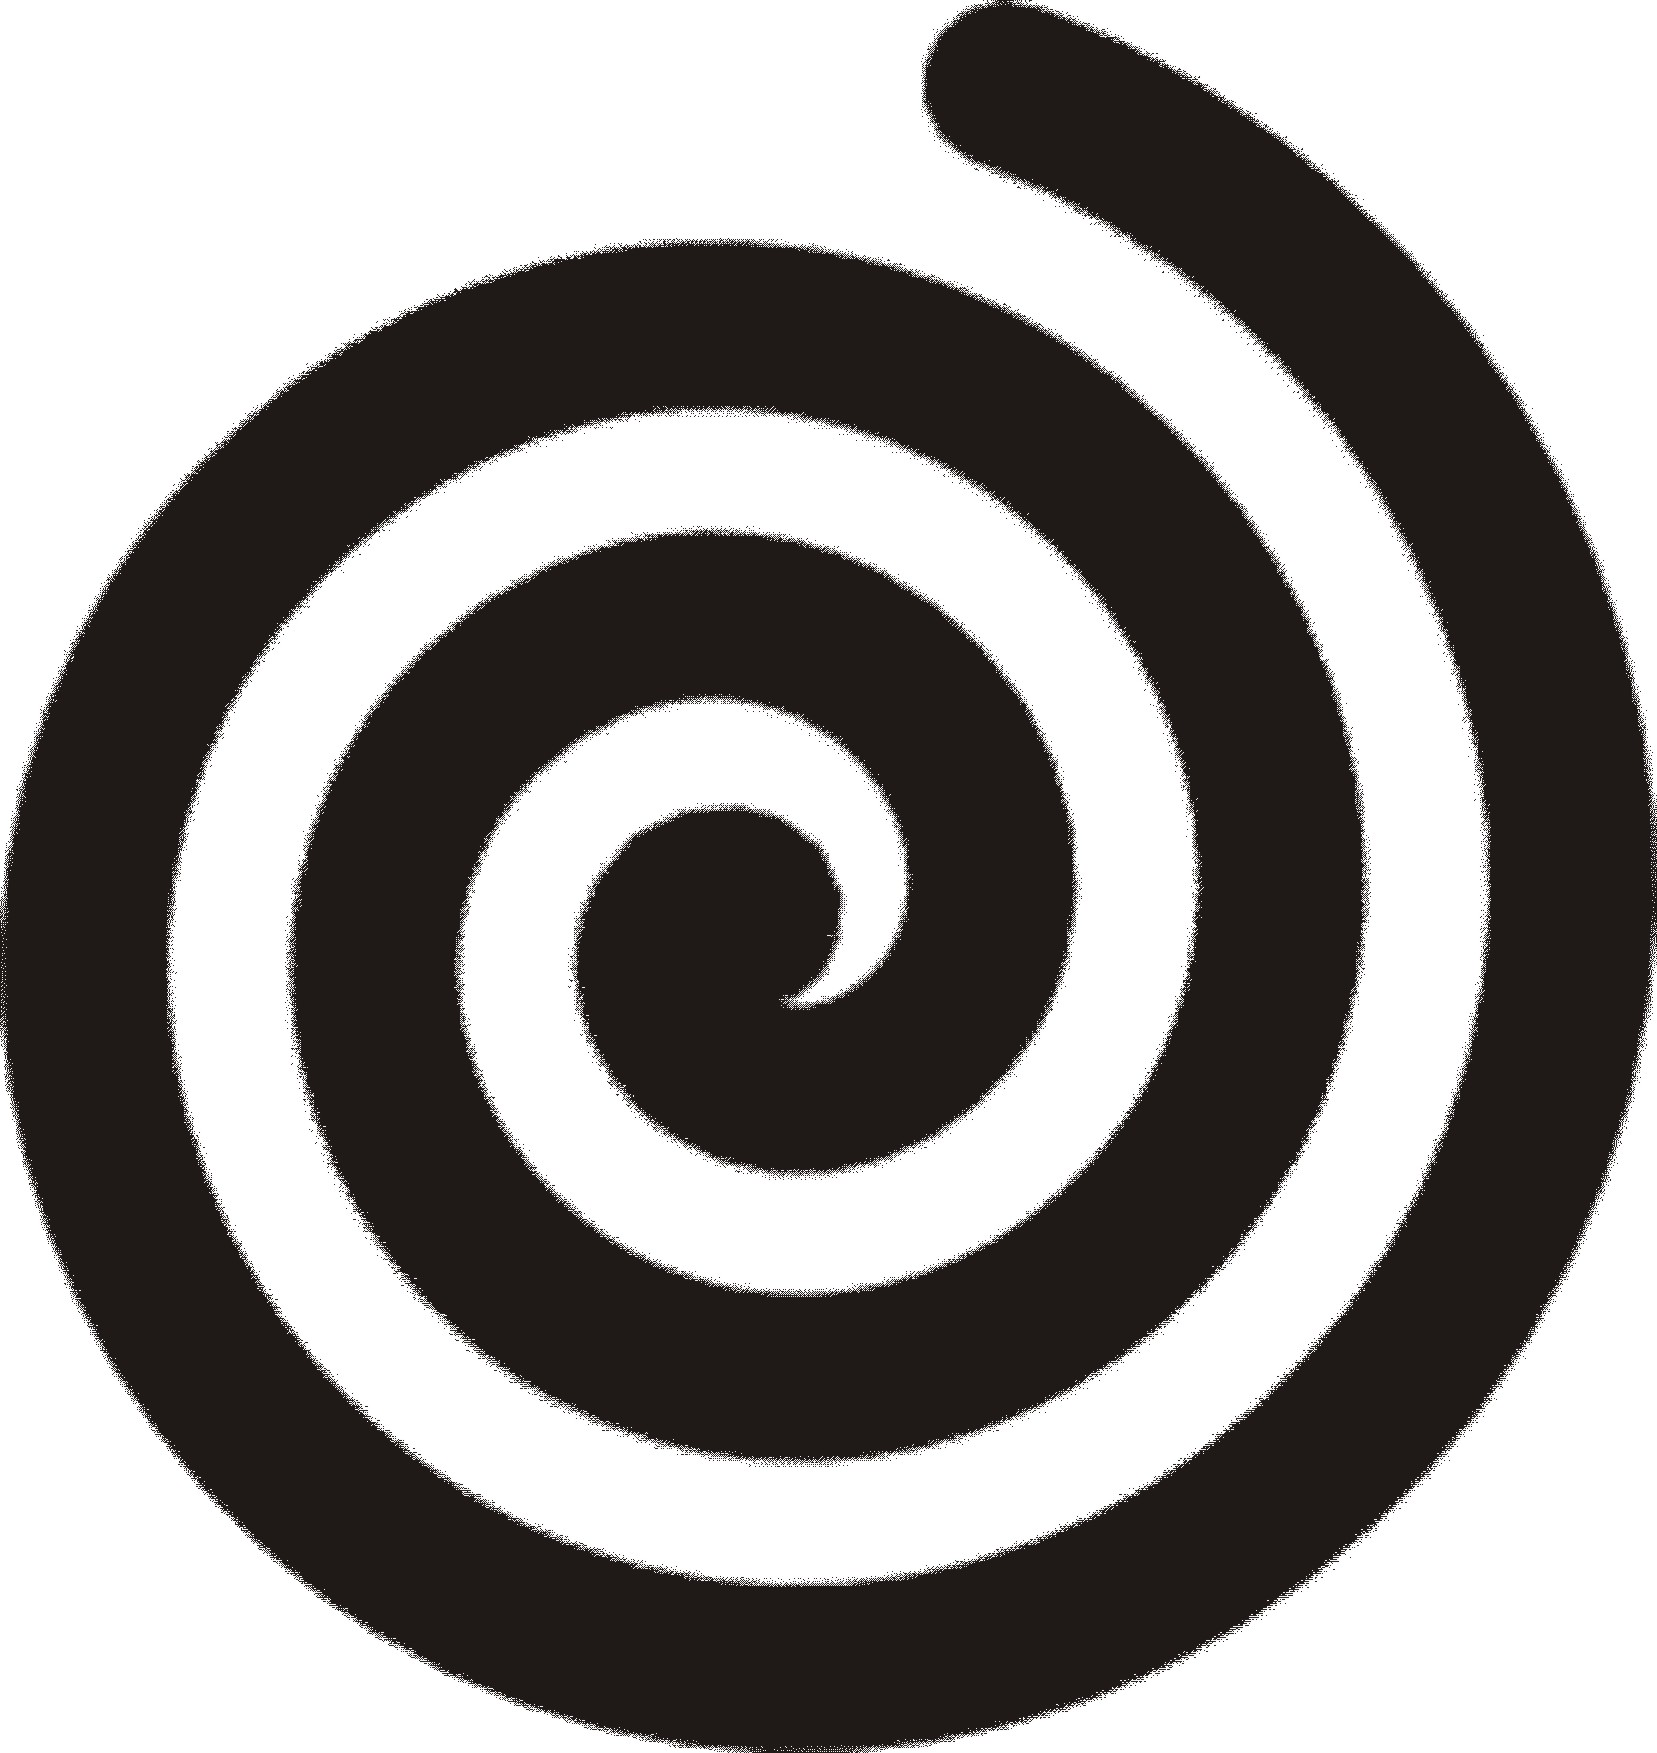 Swirl clipart black and white Clipart Free on Art